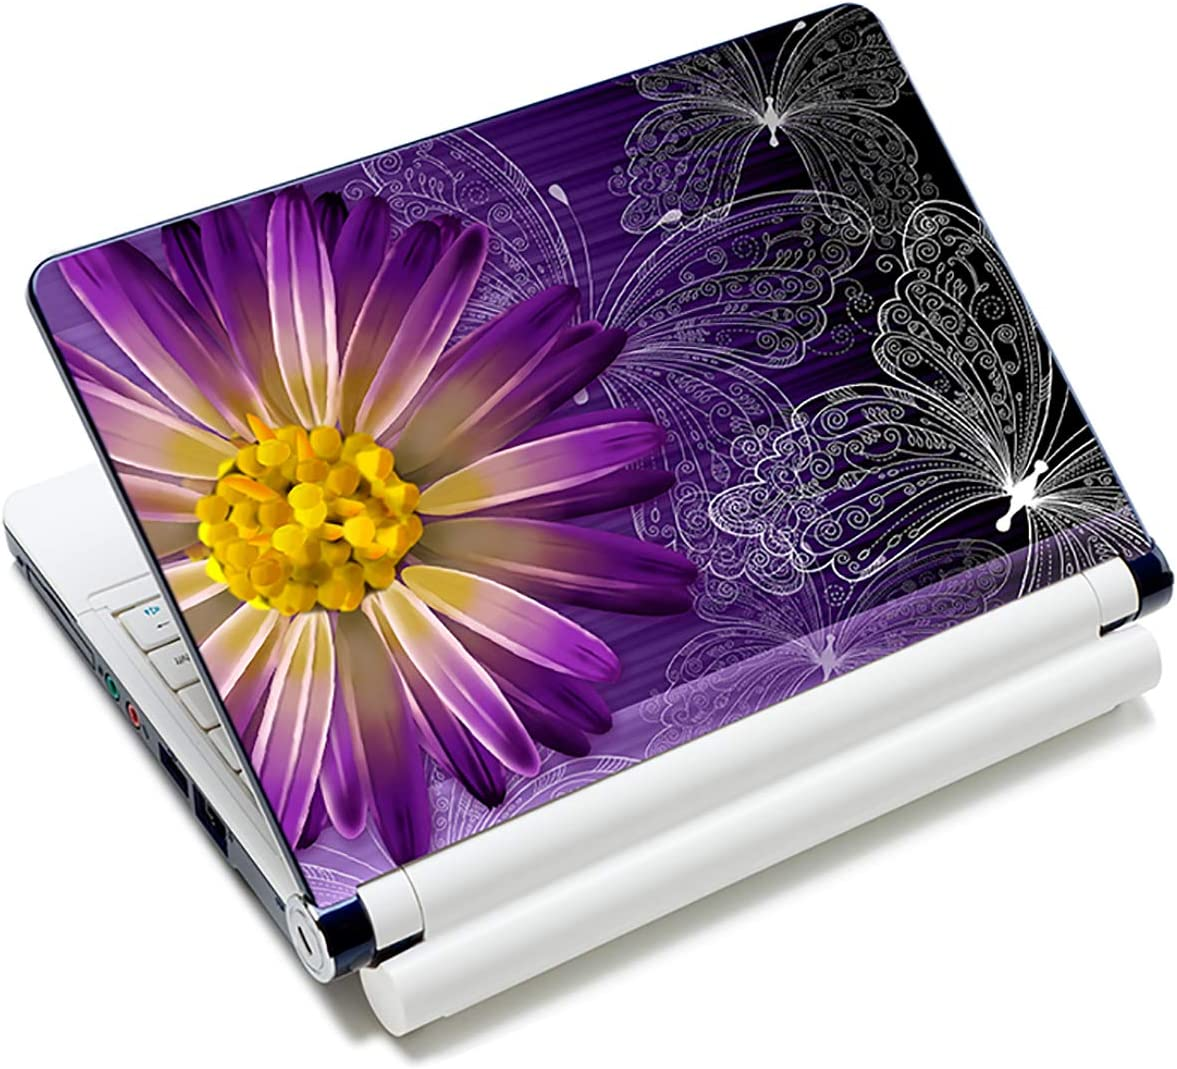 Butterfly & Daisy Flower 12.1 13 13.3 14 15 15.4 15.6 Inches Personalized Laptop Skin Sticker Decal Universal Netbook Skin Sticker Reusable Notebook PC Art Decal Protector Cover Case by AORTDES